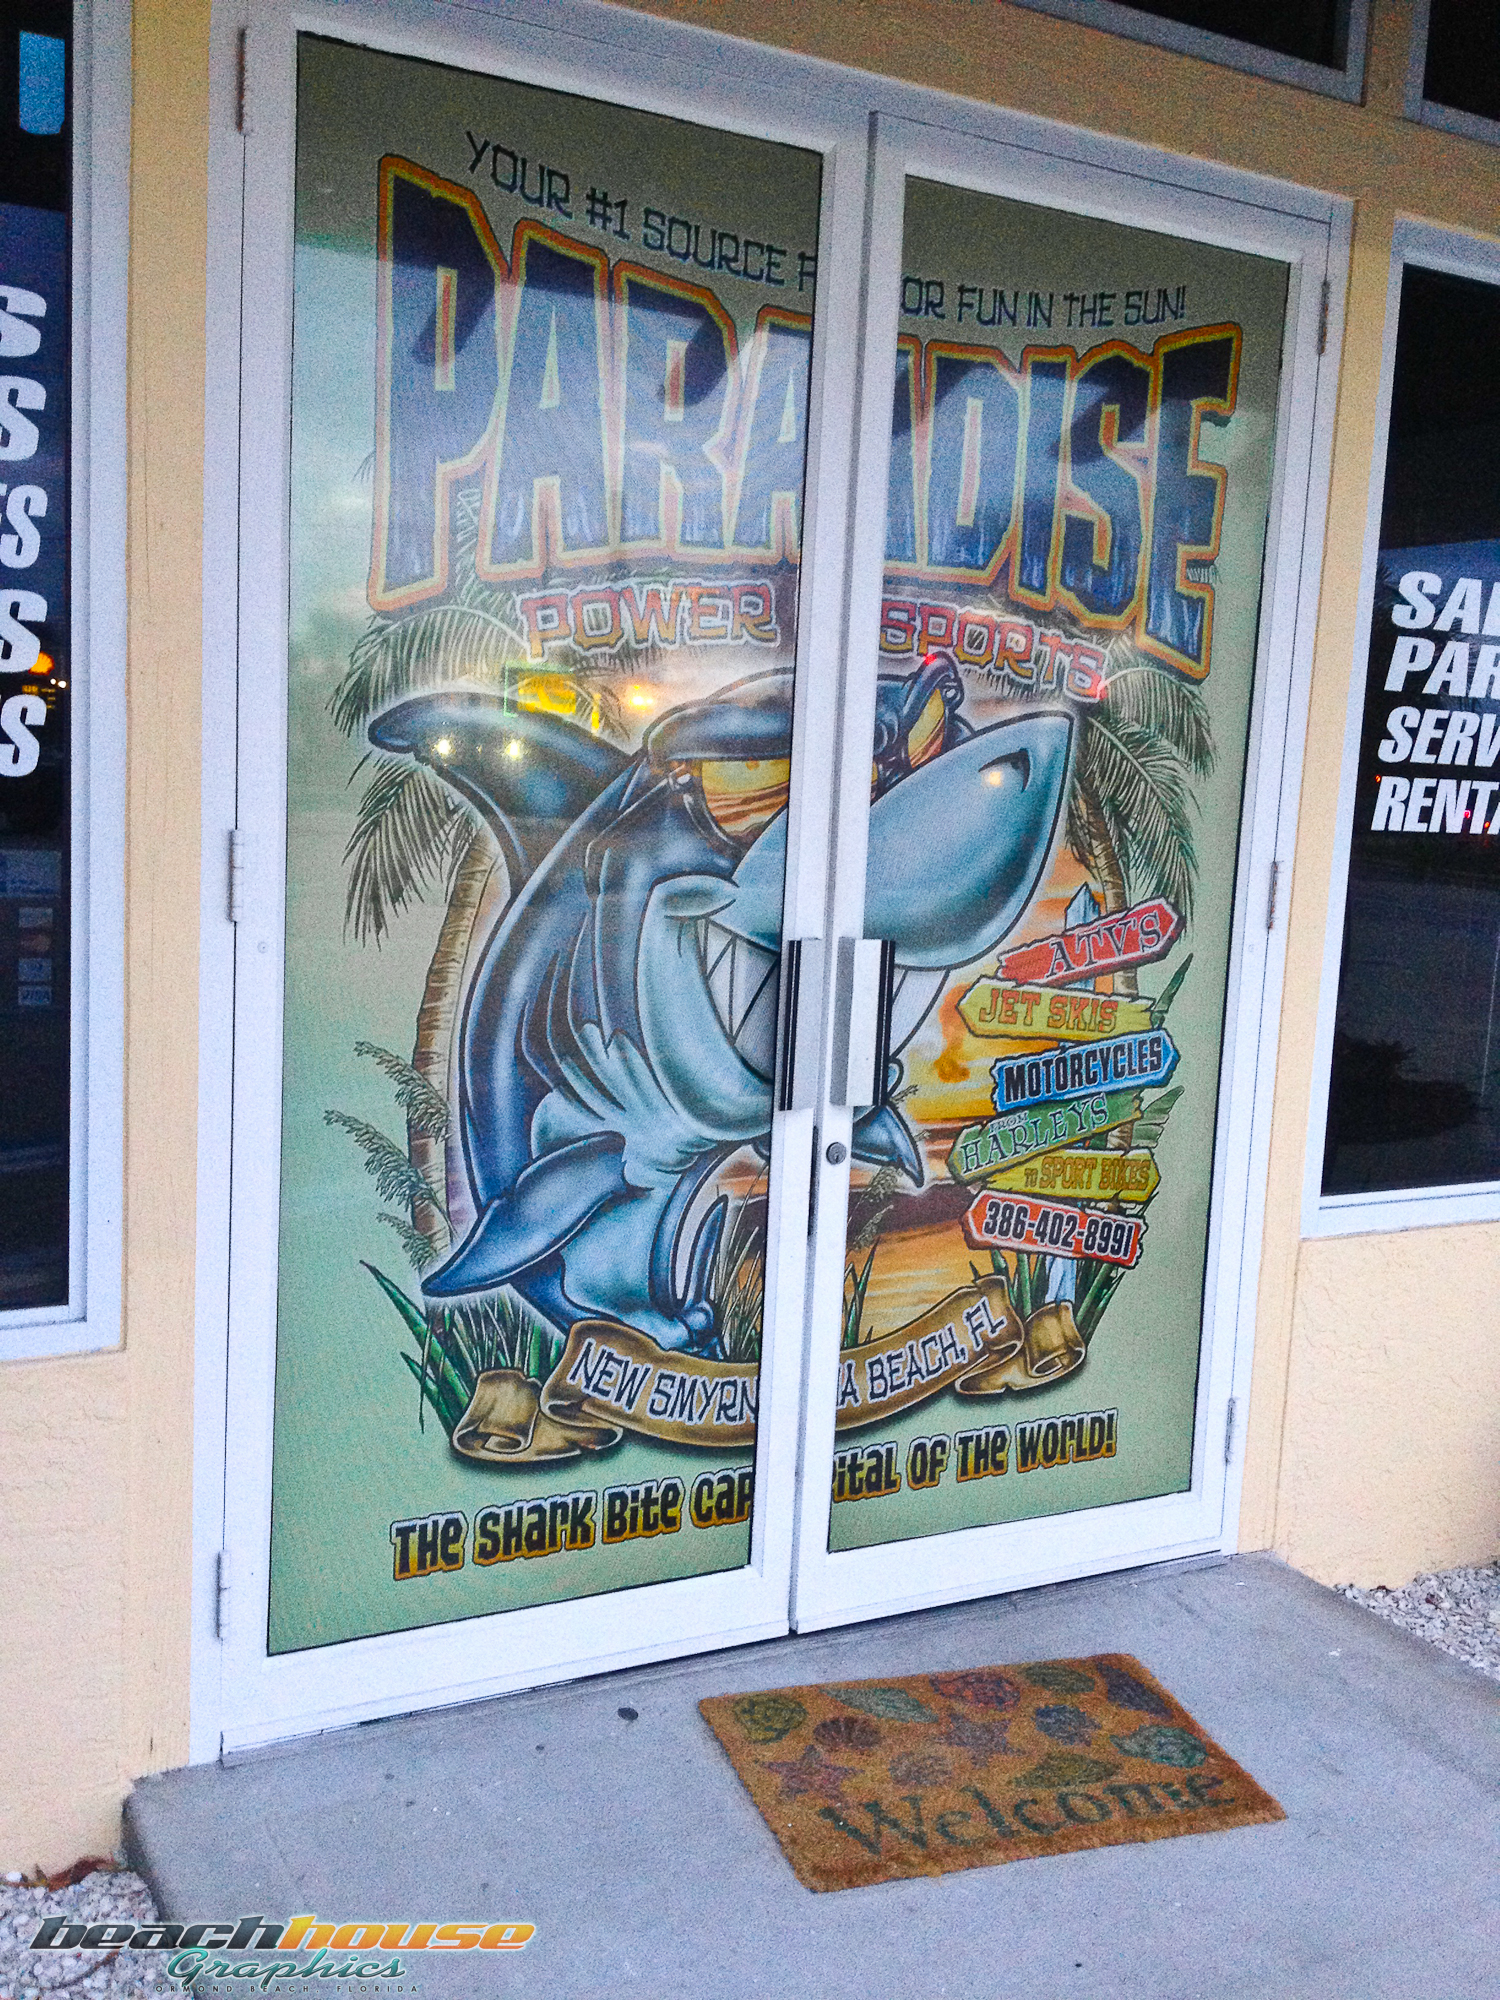 Wall graffiti vinyl lettering - Paradise Power Sports Front Doorway